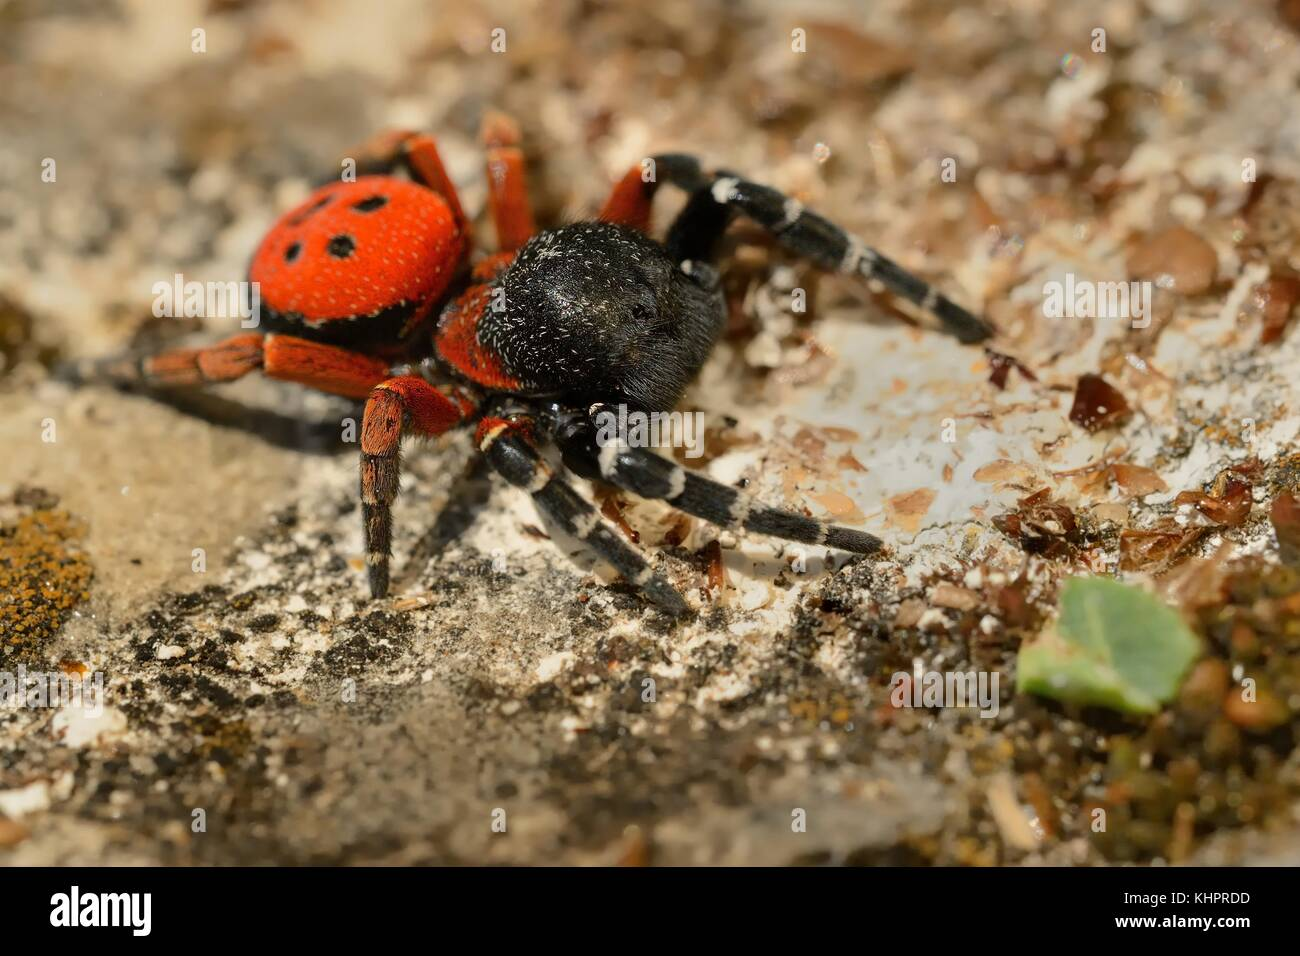 Spider Eresus moravicus - male searching female. - Stock Image